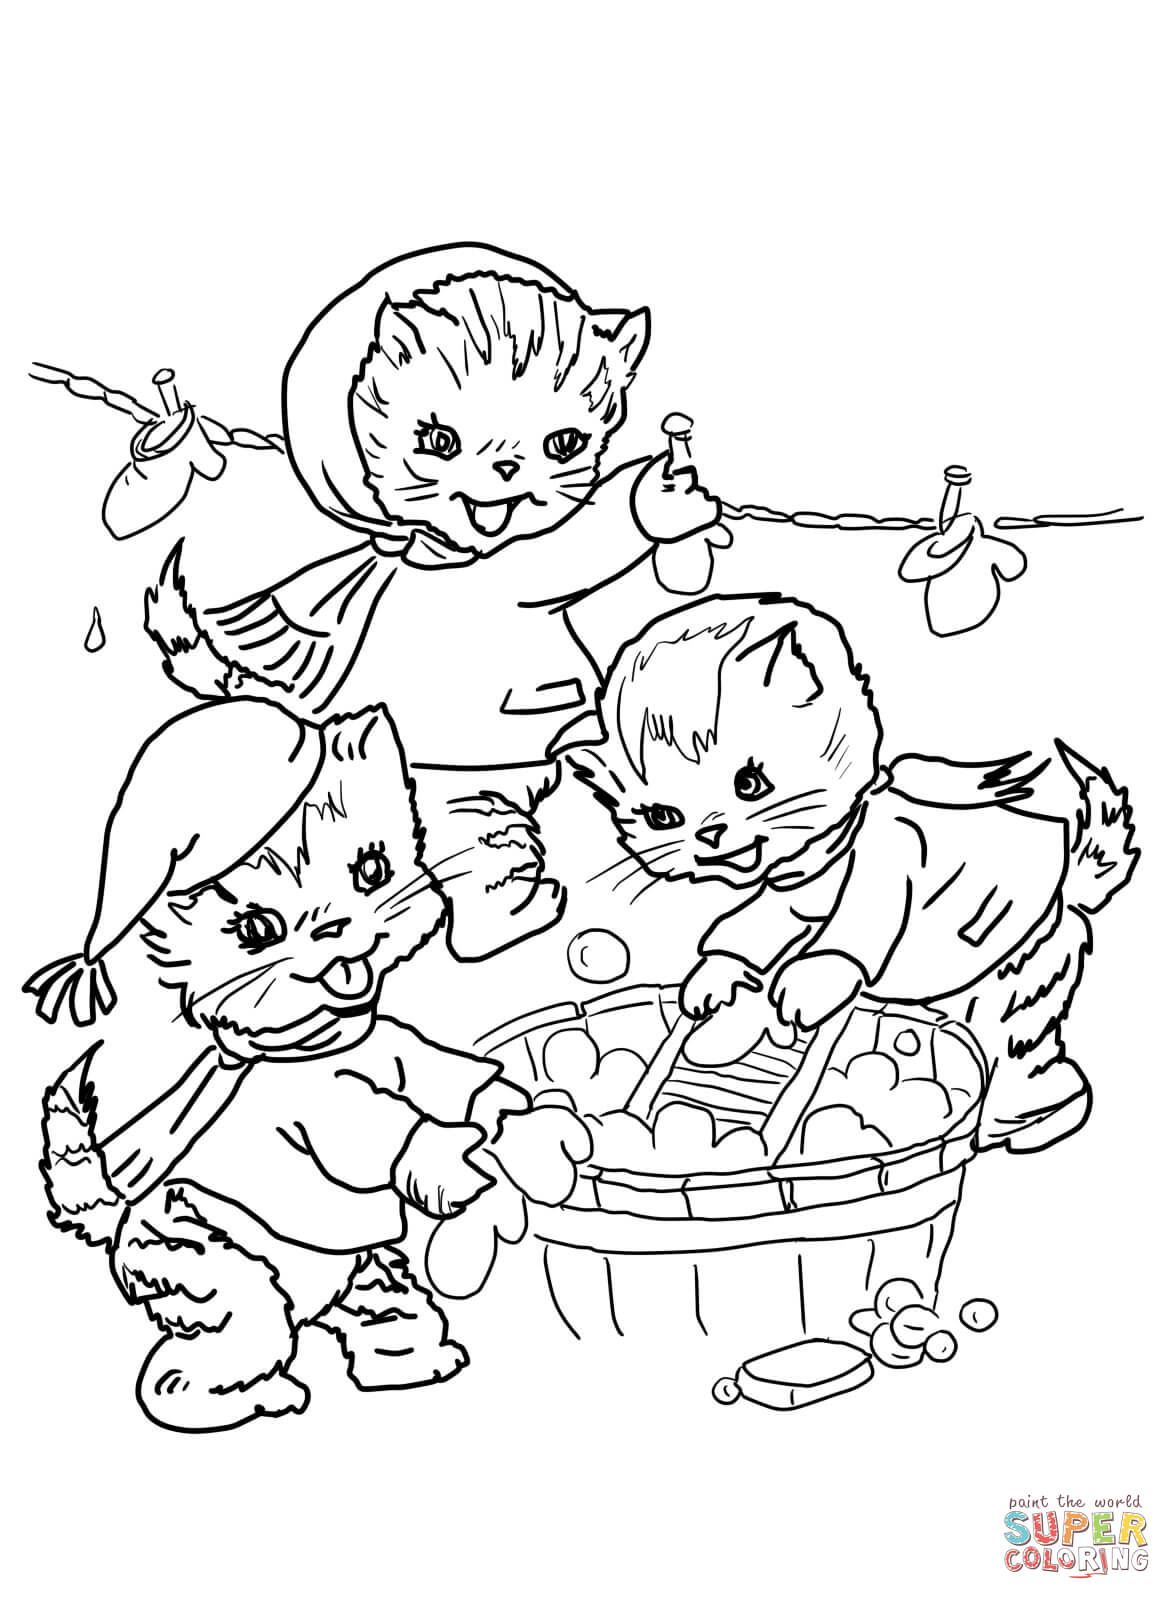 Printable Mitten Coloring Page The Three Little Kittens They Washed Their Mittens Coloring Page